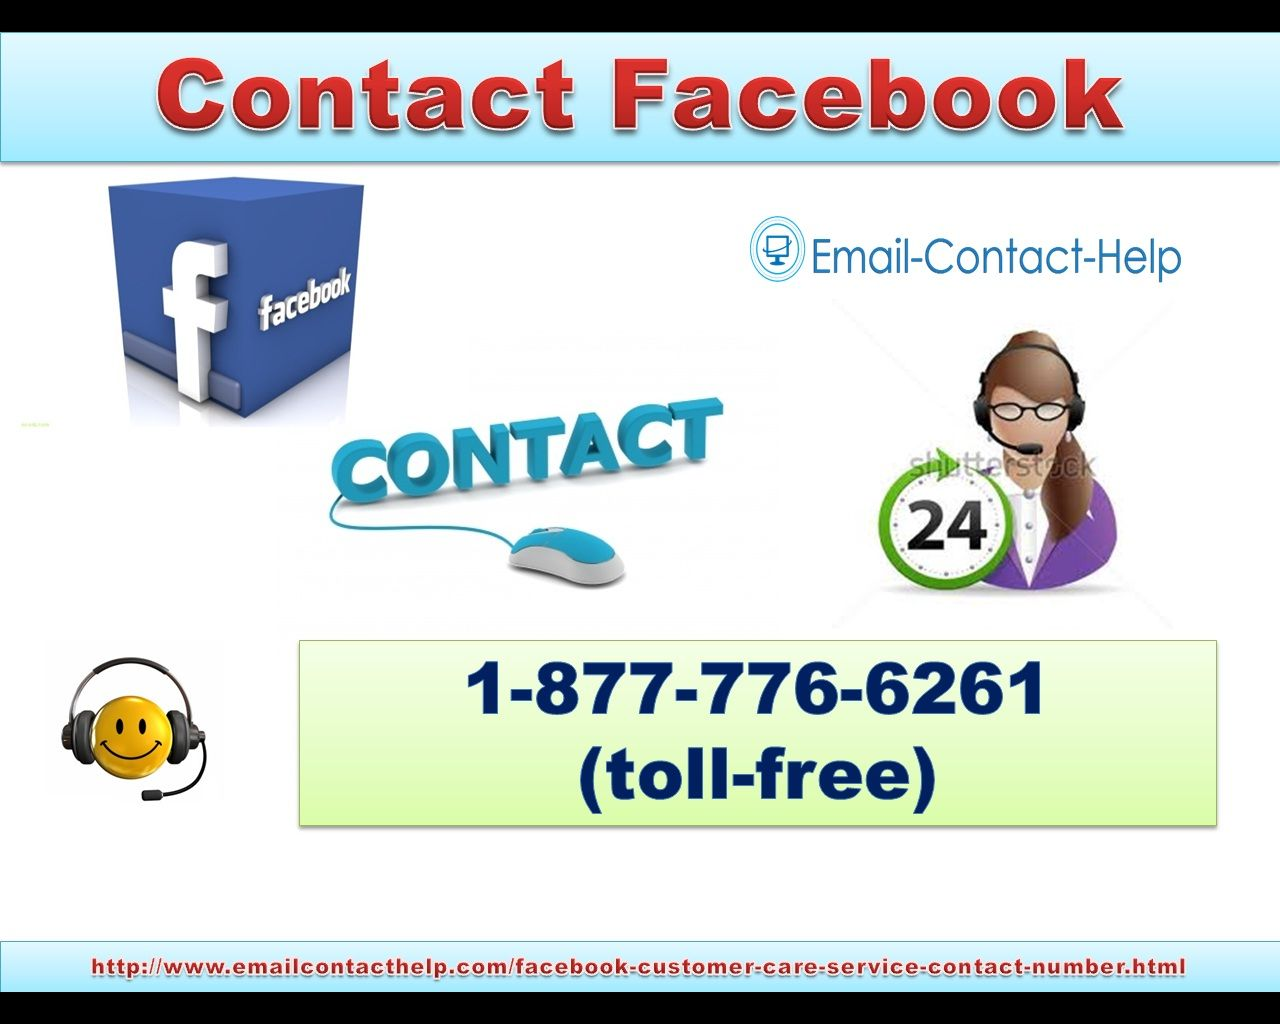 Contact facebook customer service 18777766261 to get in